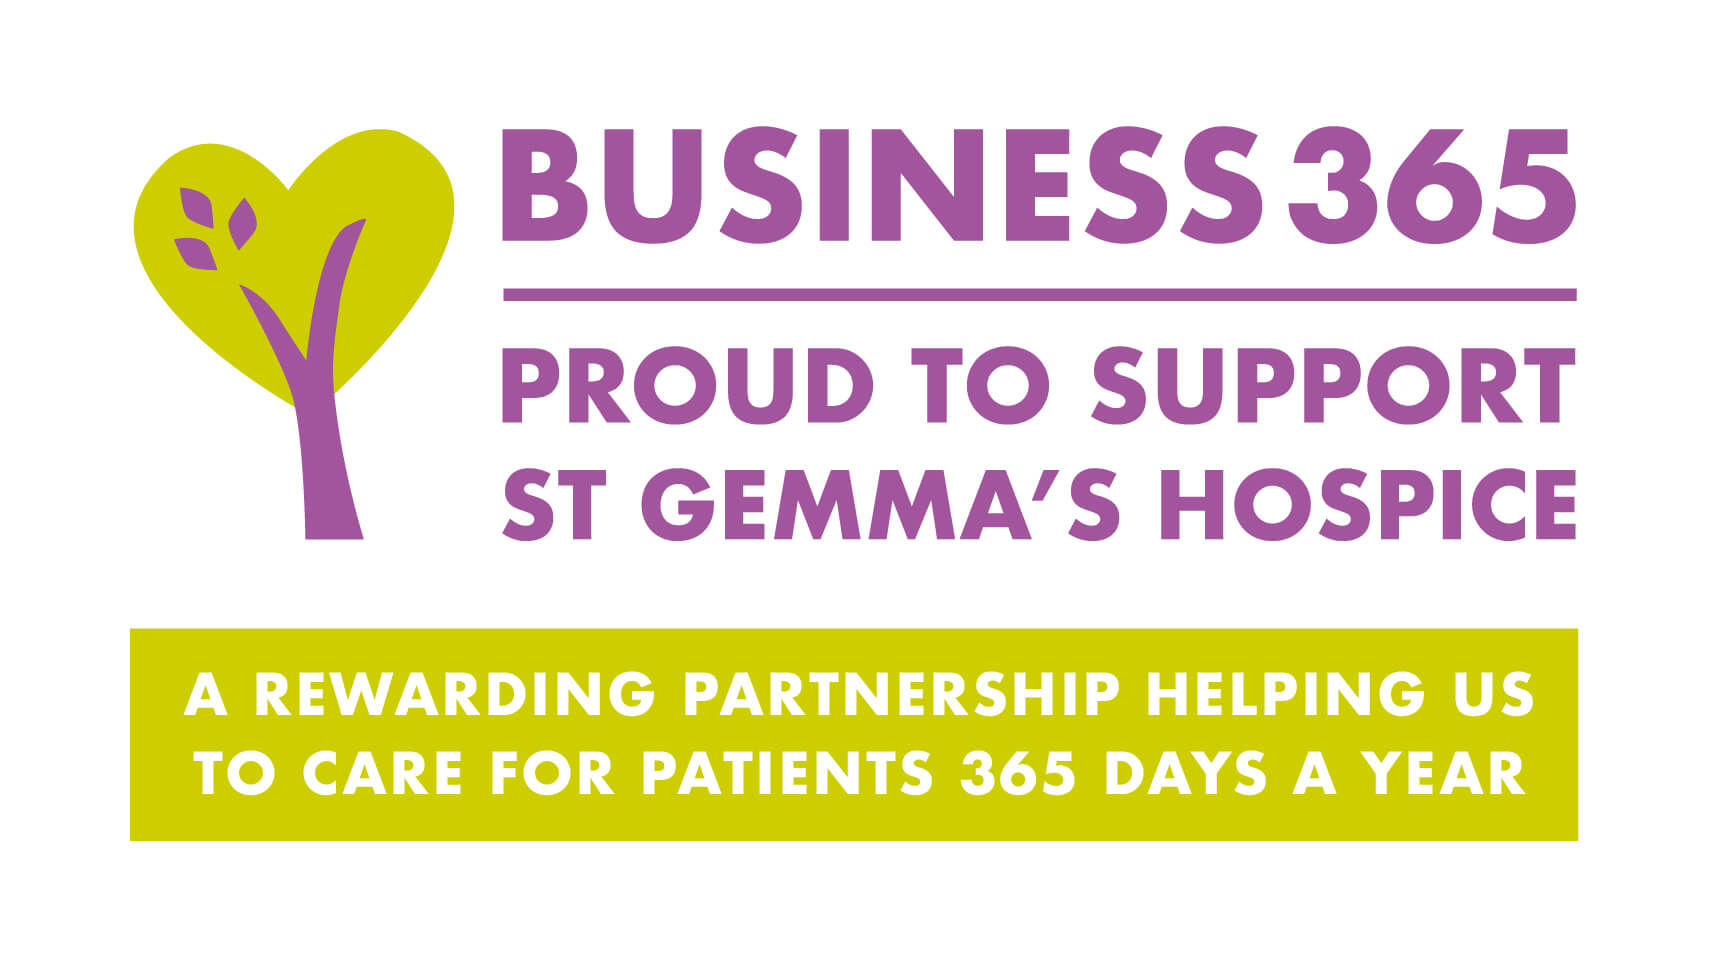 A rewarding partnership helping us to care for patients 365 days a year